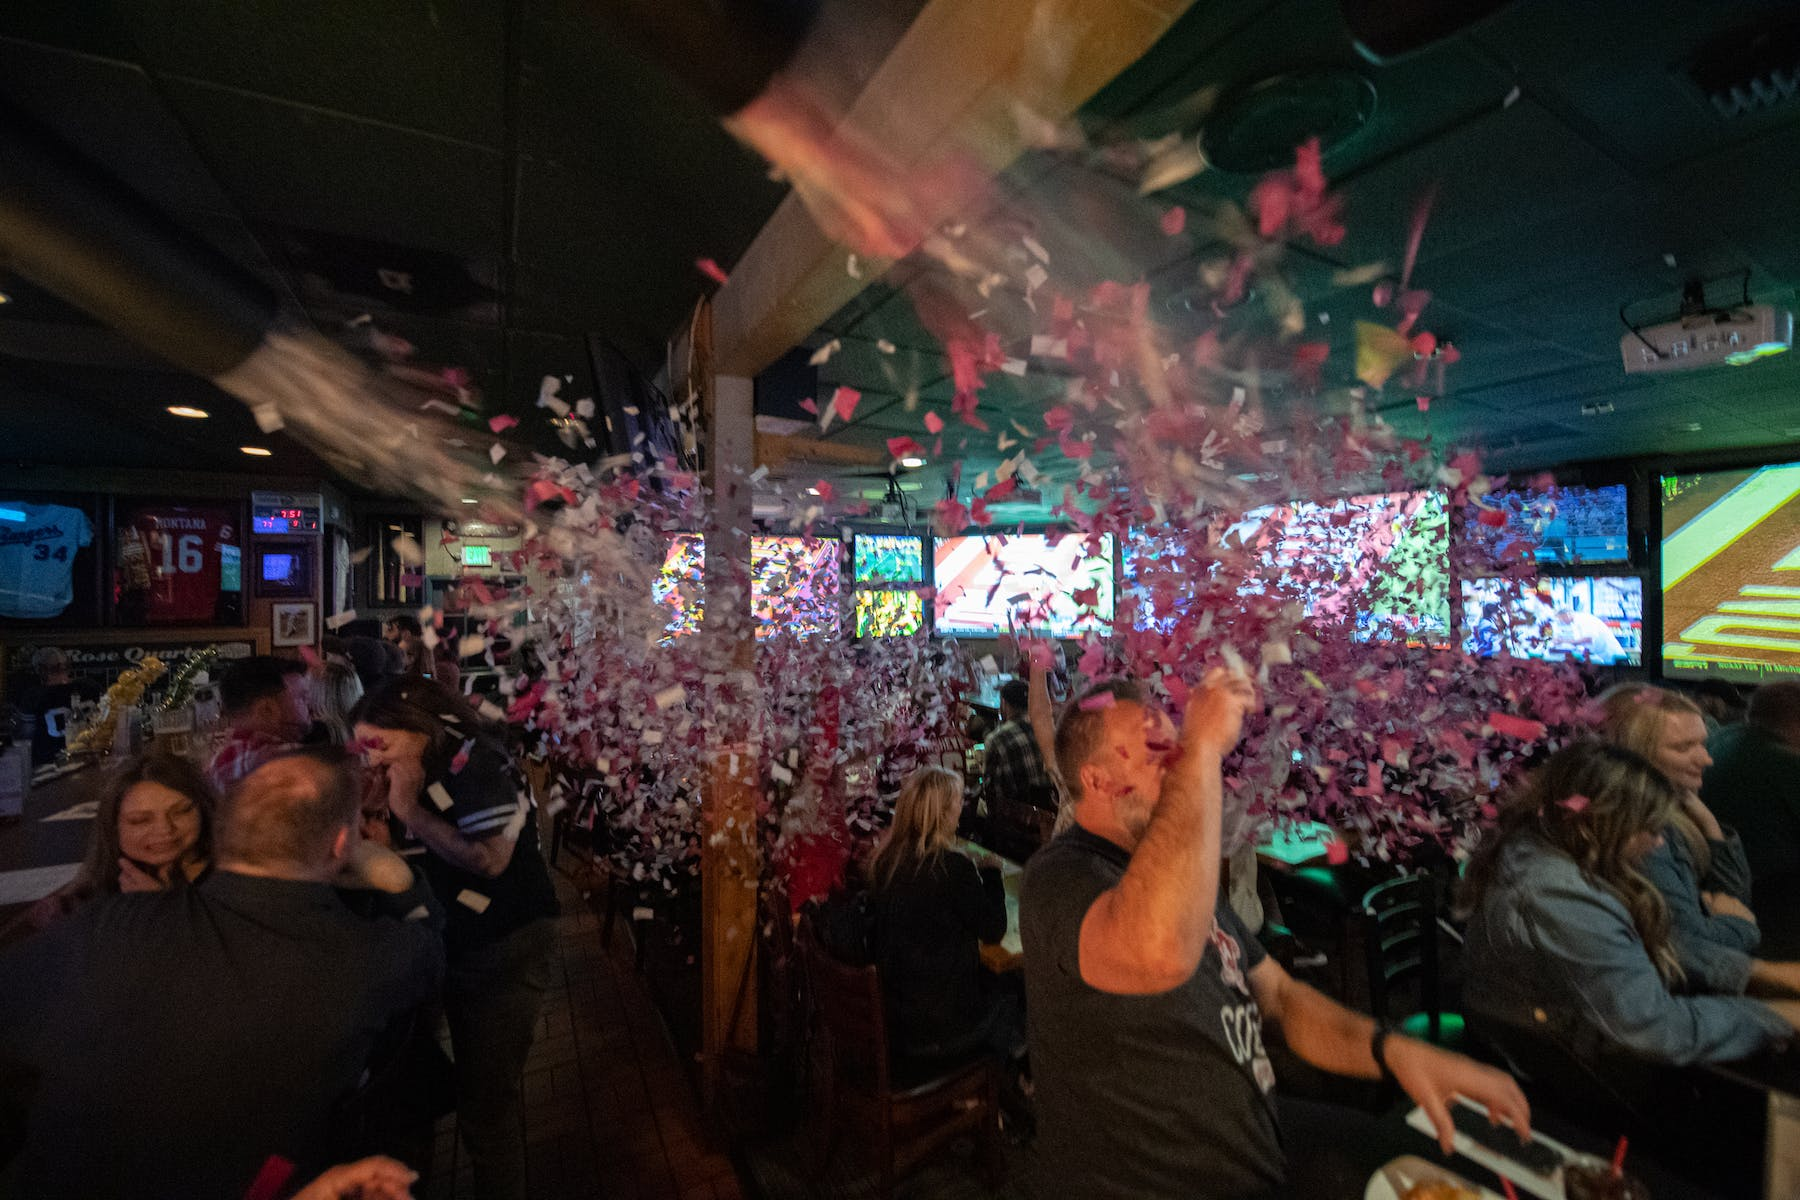 a group of people celebrating at the restaurant throwing confetti